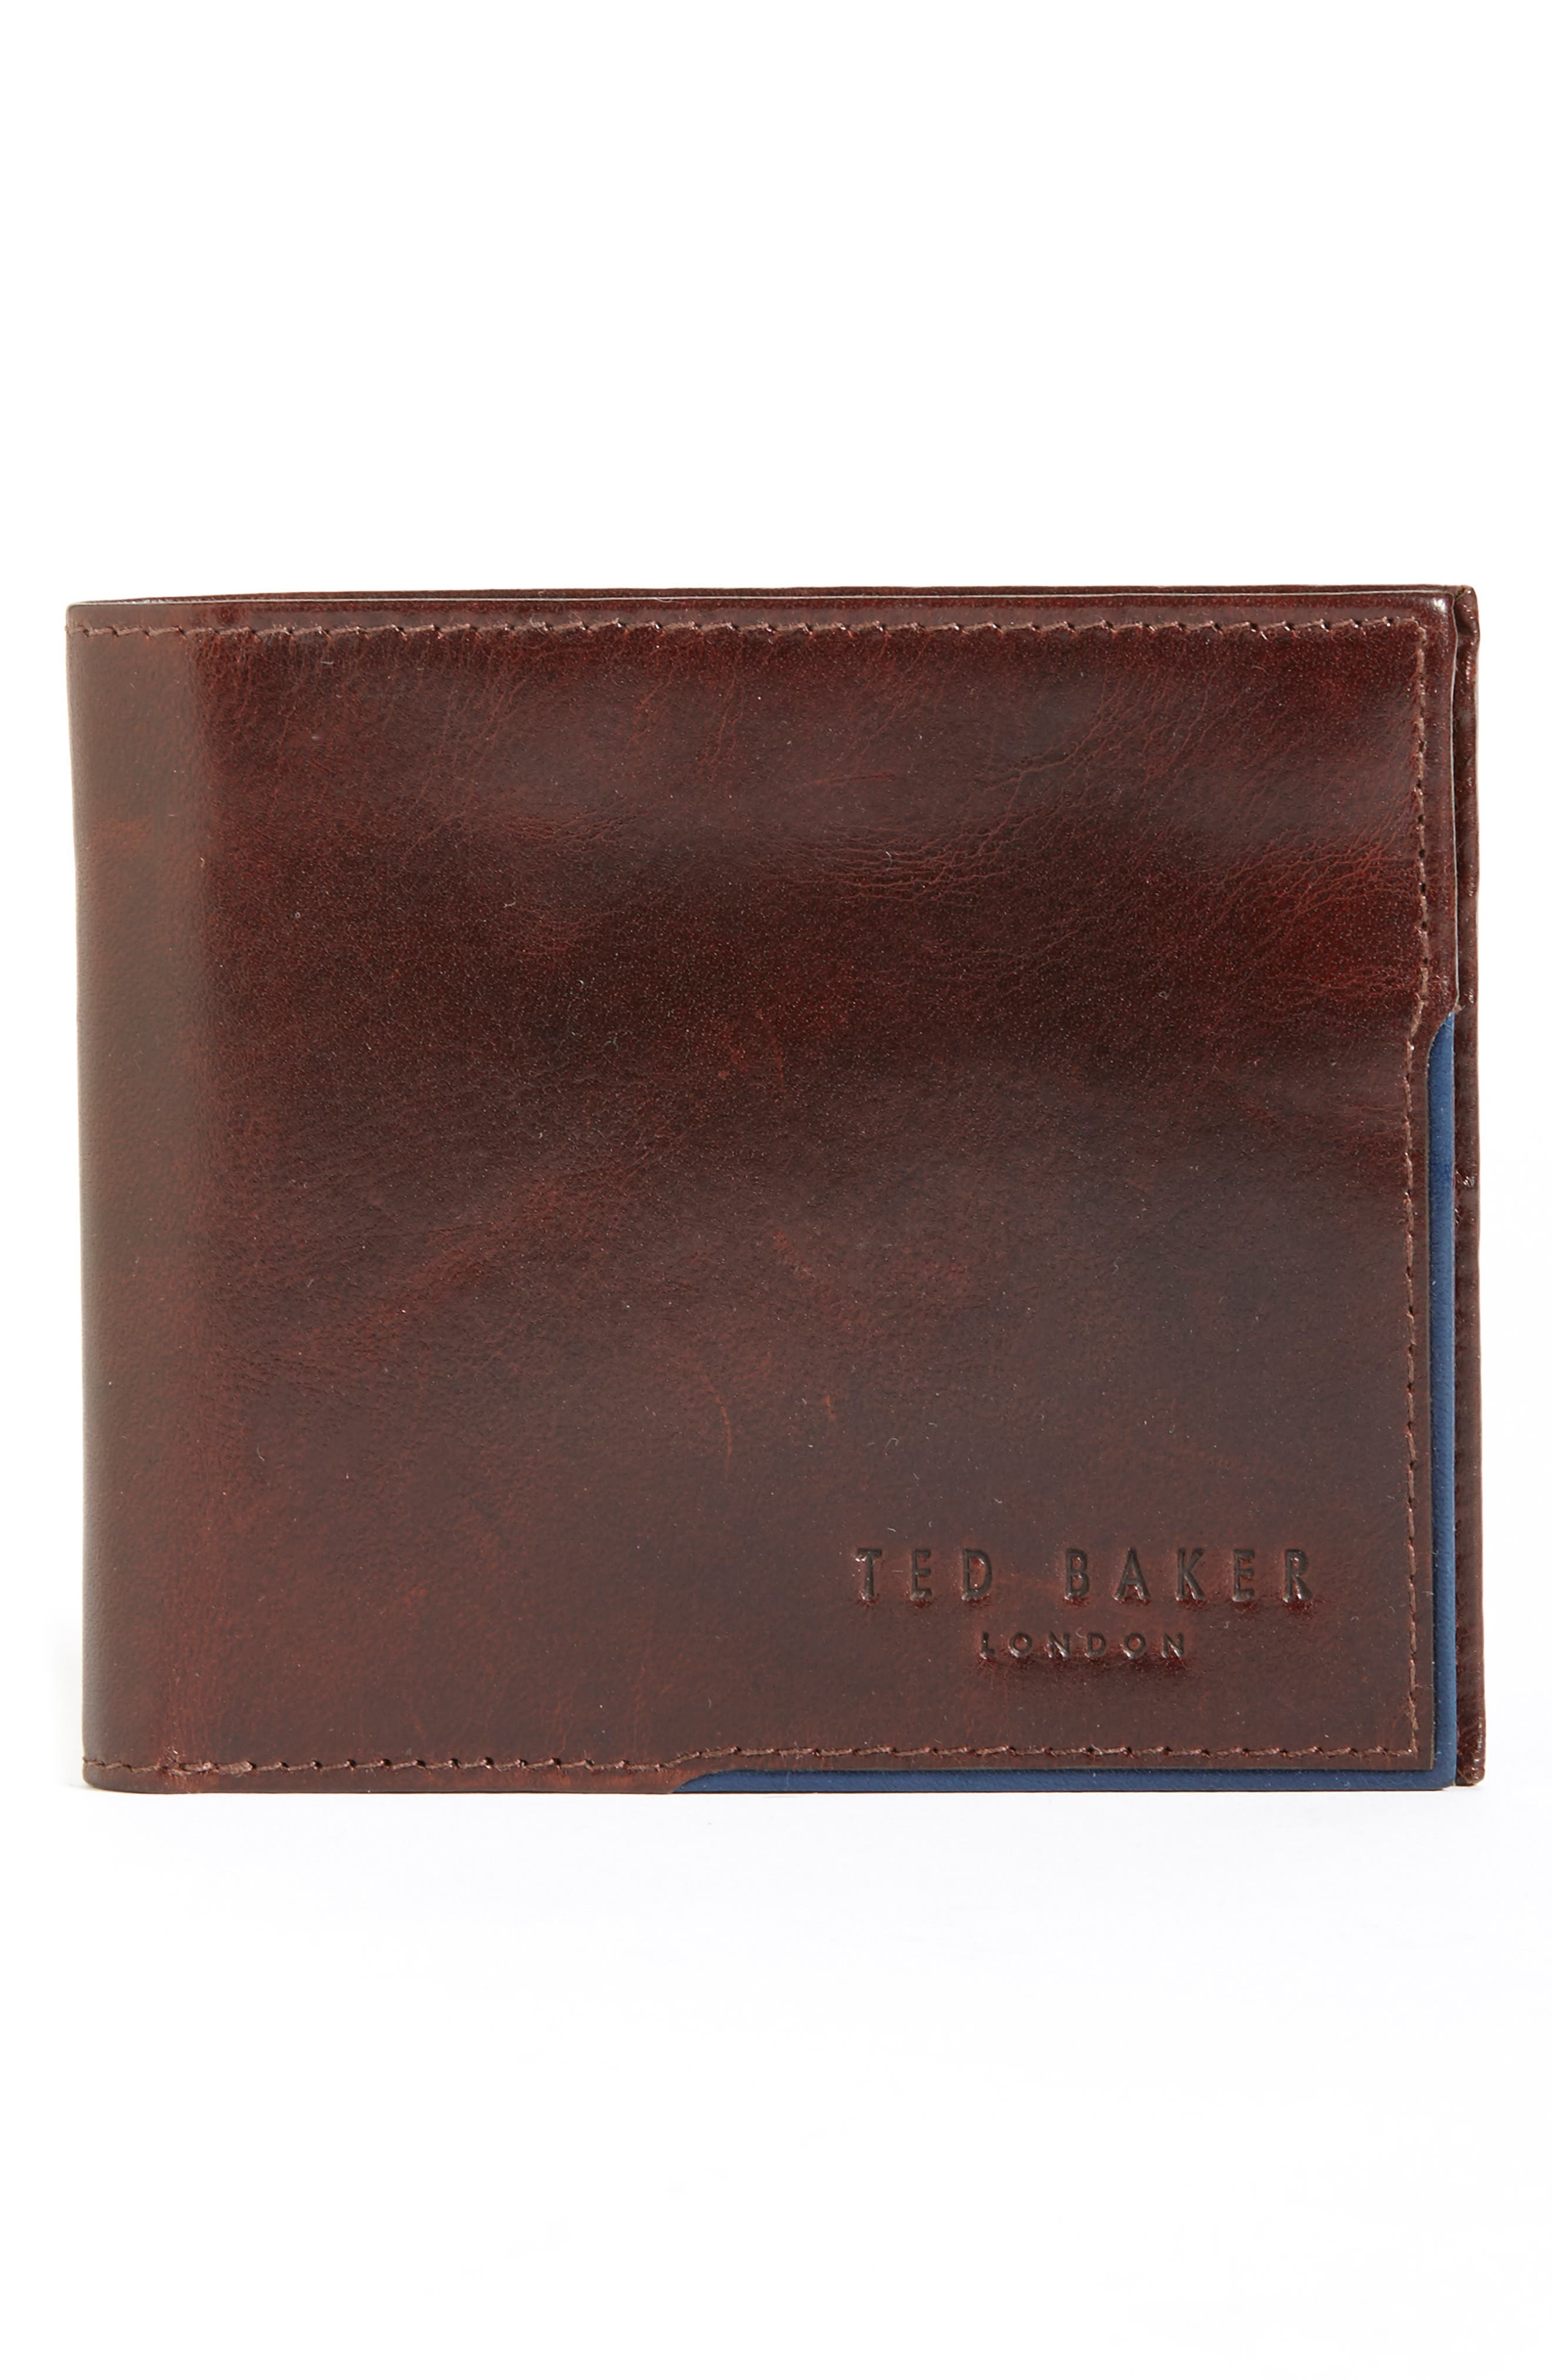 Ted Baker London Carouse Leather Wallet